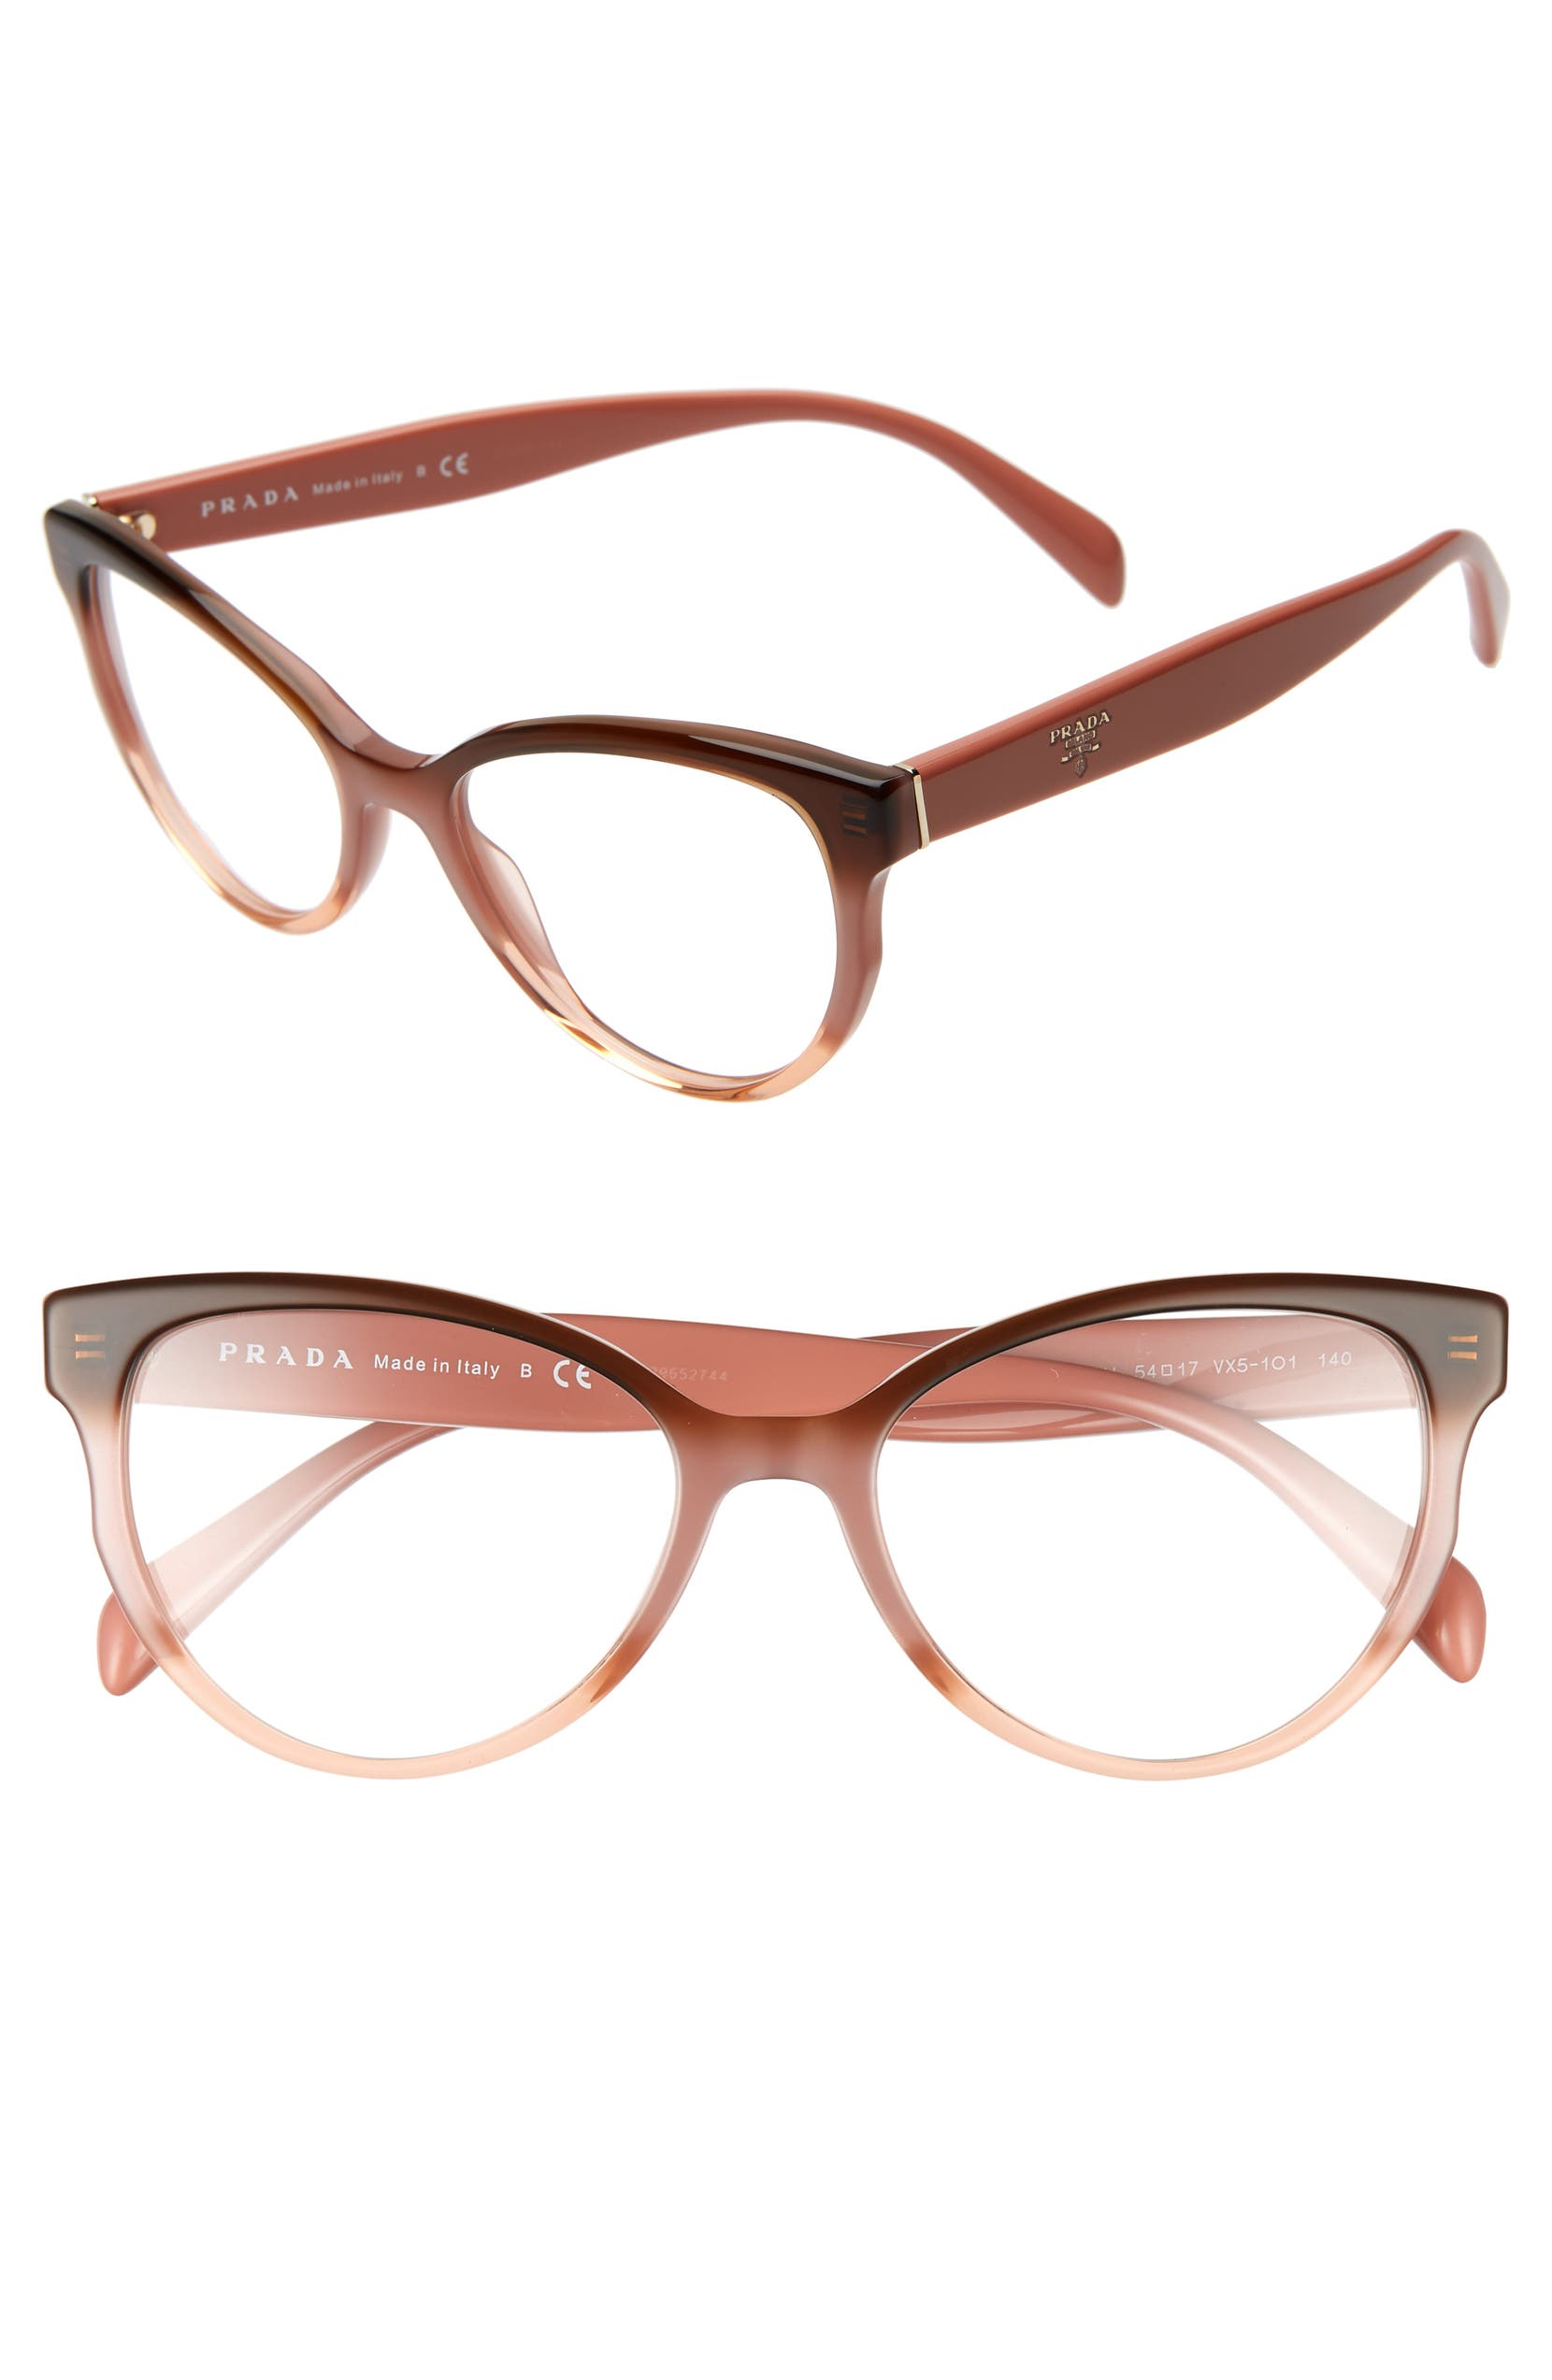 91b2c84049e Prada 54mm Cat Eye Optical Glasses